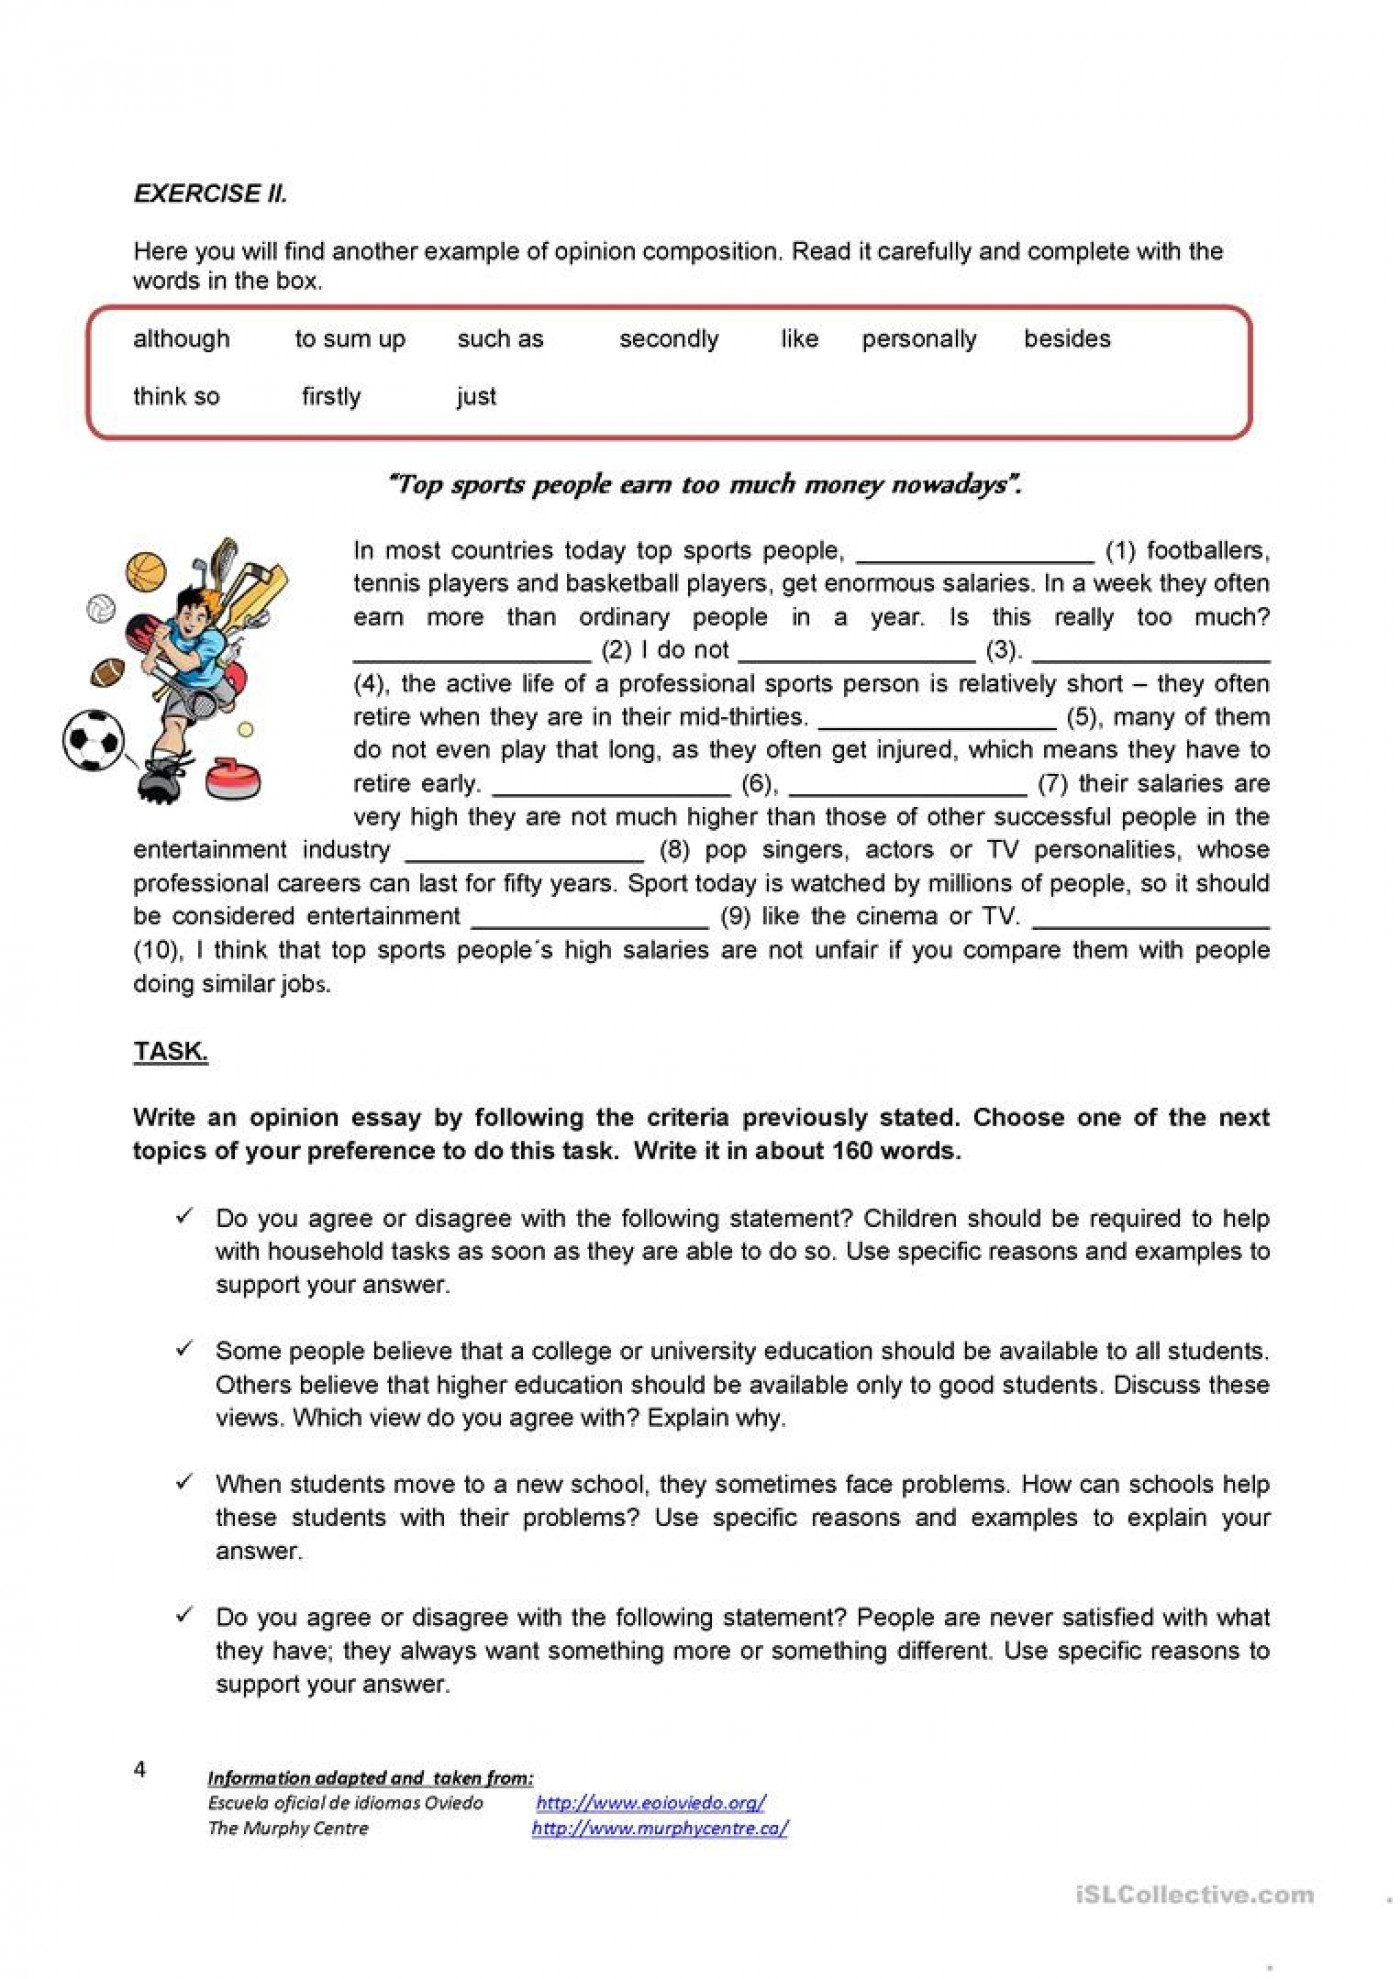 004 Essay Example Writing An Opinion Creative Tasks 80444 4 How To Unbelievable Write Conclusion On A Book Video 1400